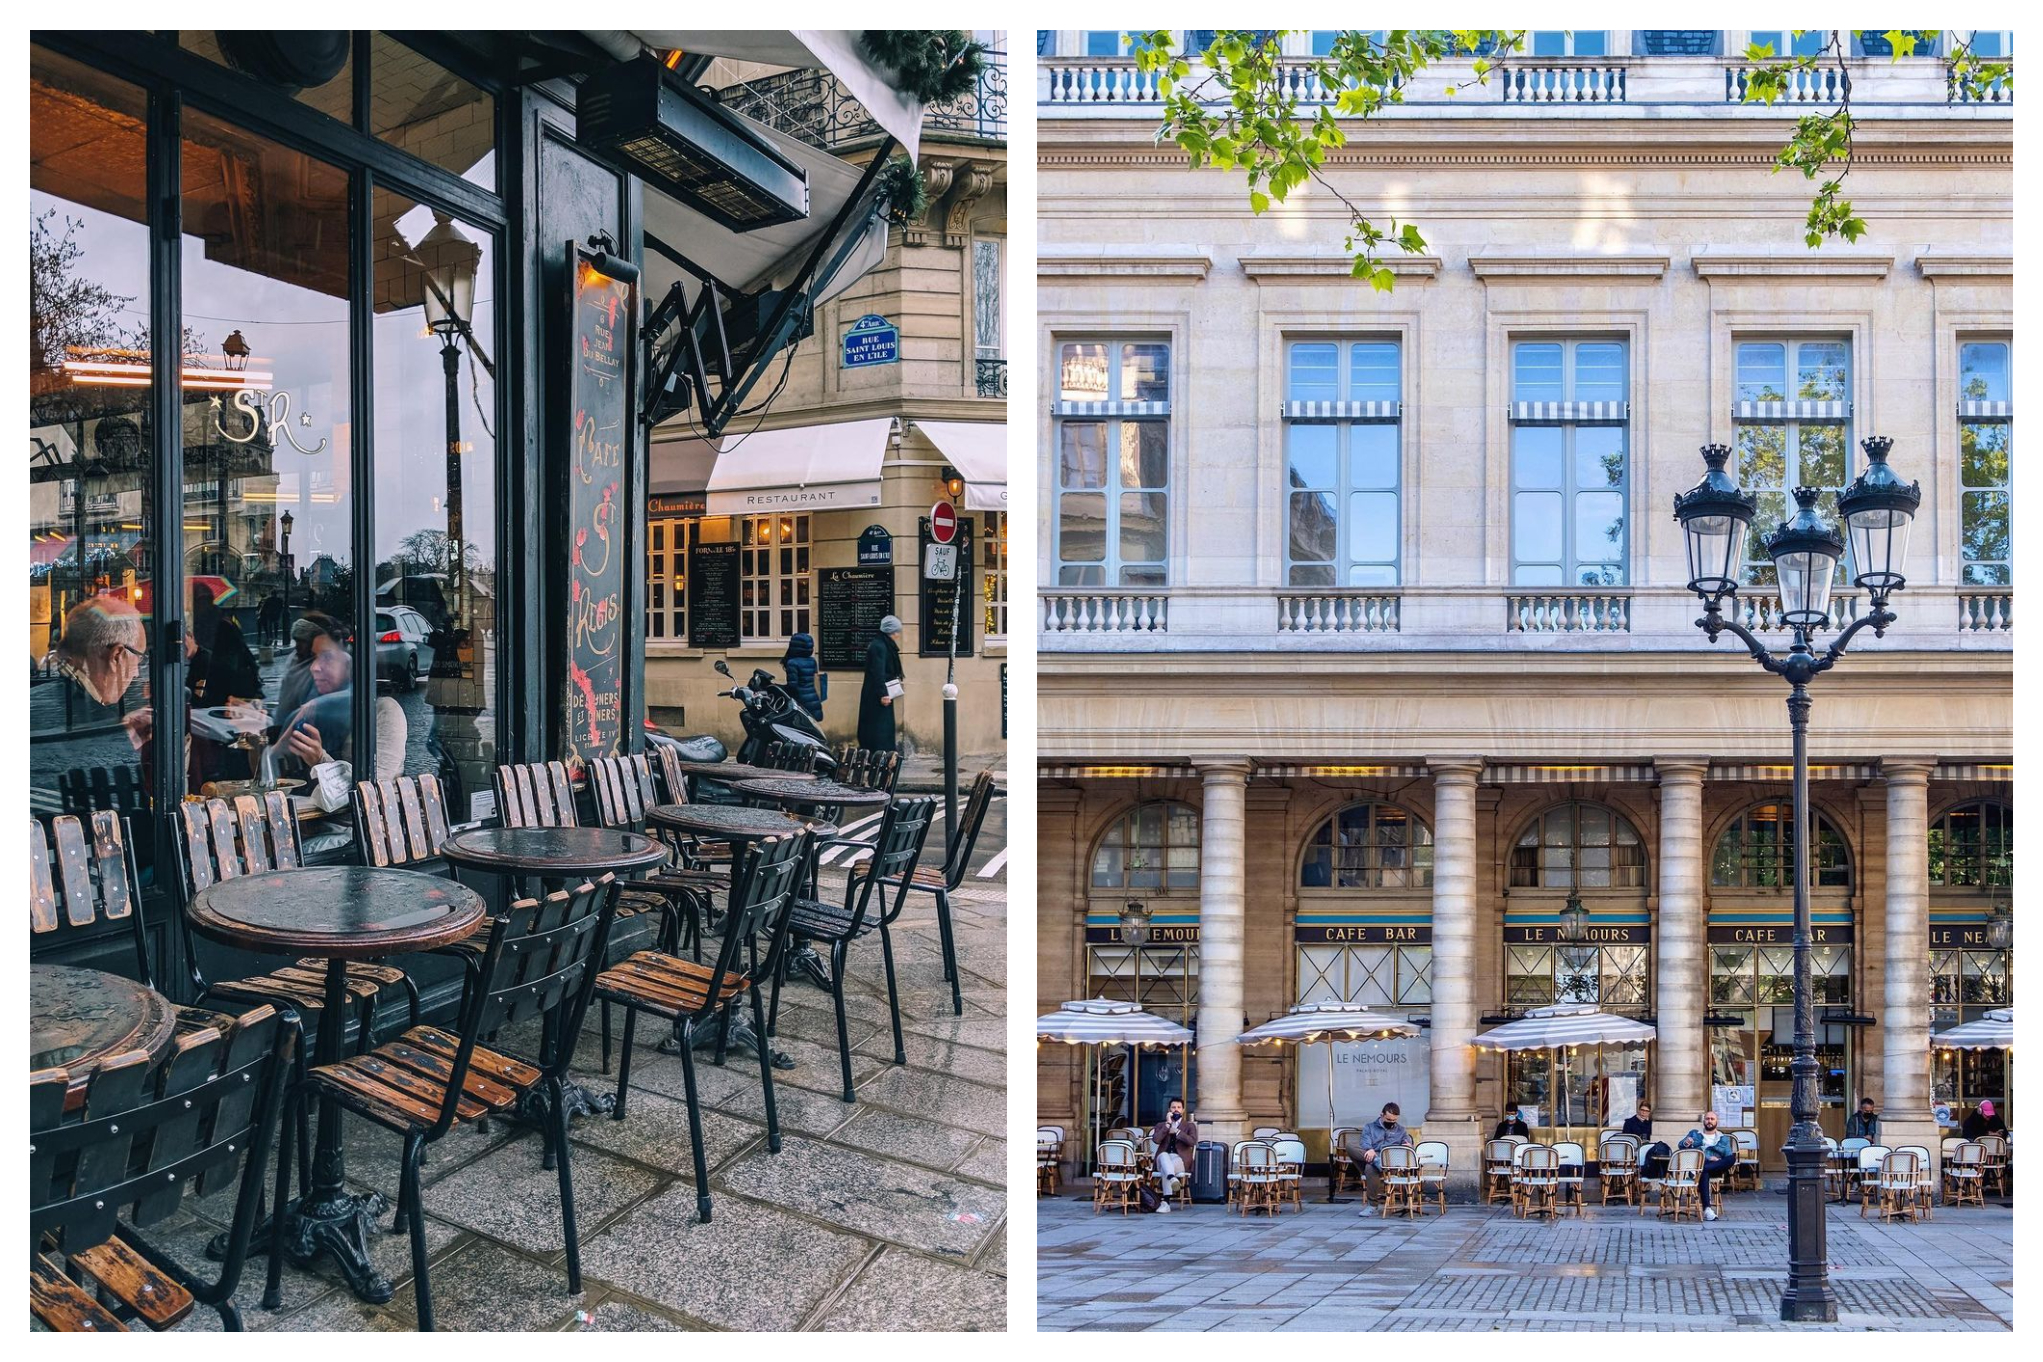 Left: A picture of the iconic Parisian café called Café Saint Regis with its dark green and wooden outdoor terrace chairs and tables. Right: Another iconic Parisian café, Le Nemours, taken from Place de Colette.